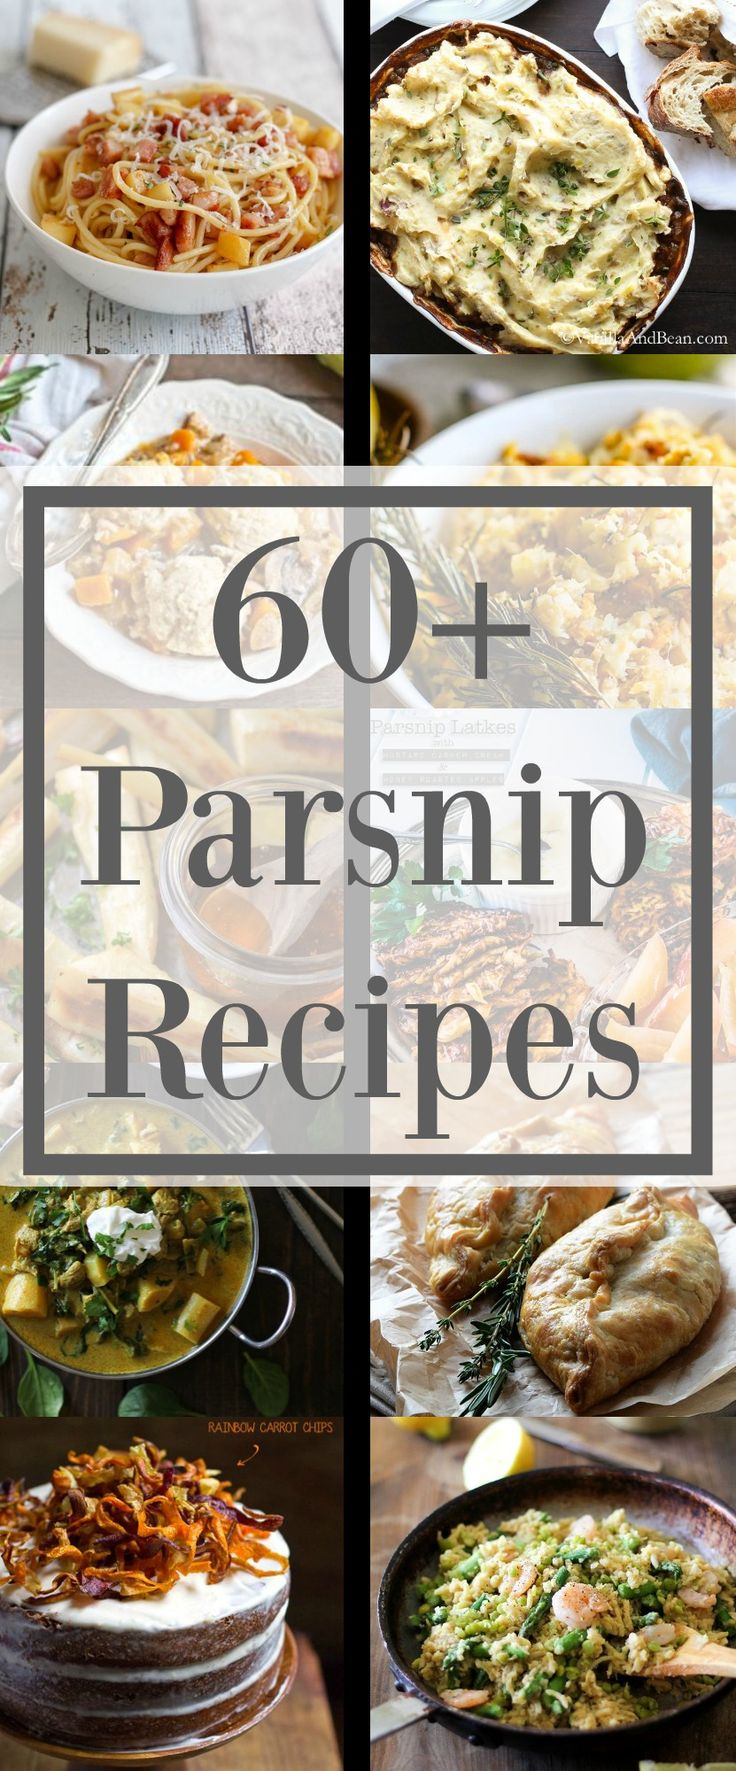 60+ Recipes that call for Parsnips.                                                                                                                                                                                 More